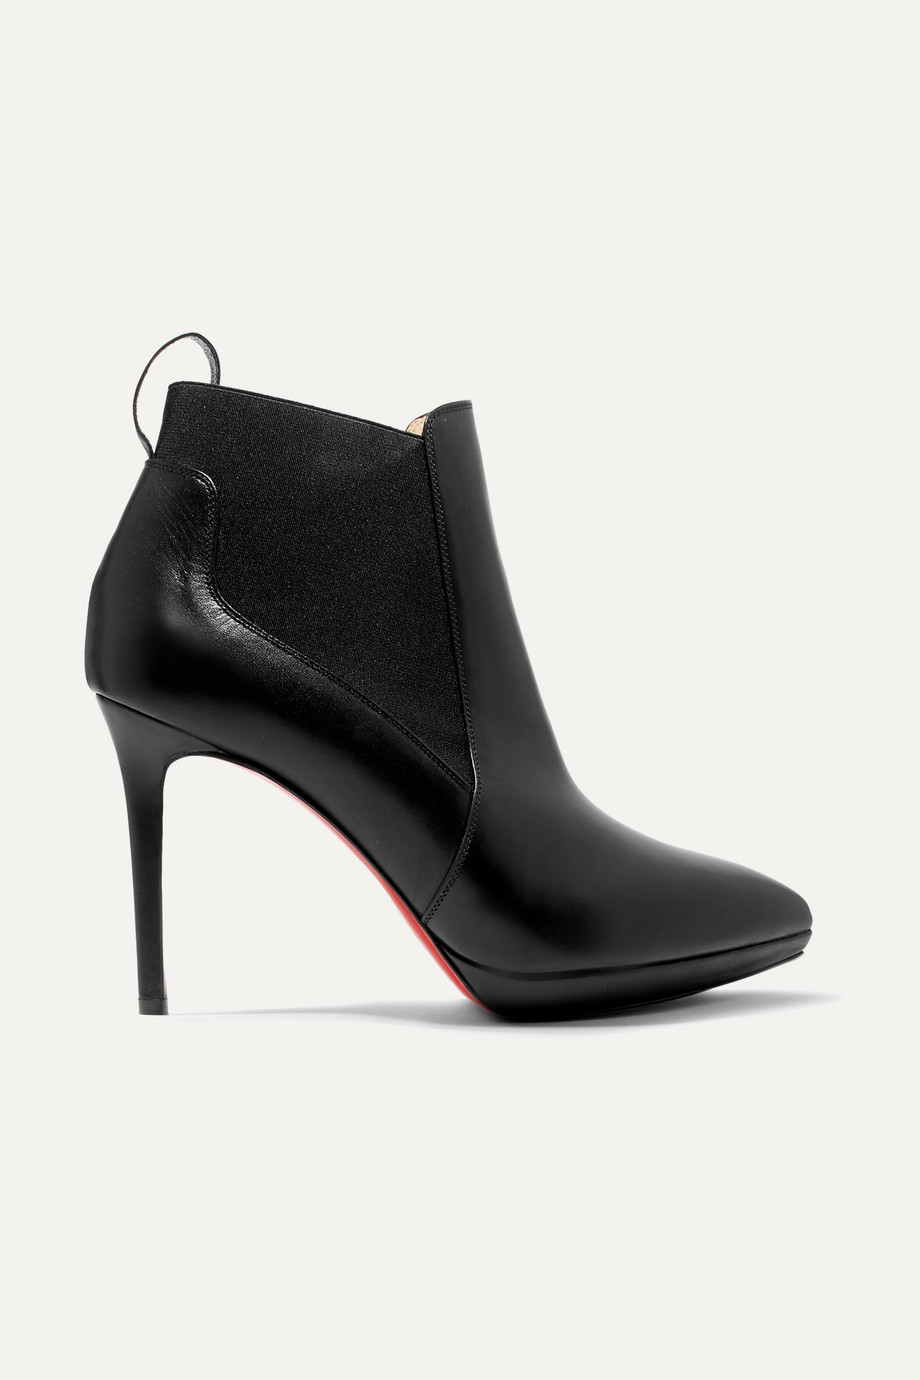 Christian Louboutin Crochinetta 100 leather ankle boots